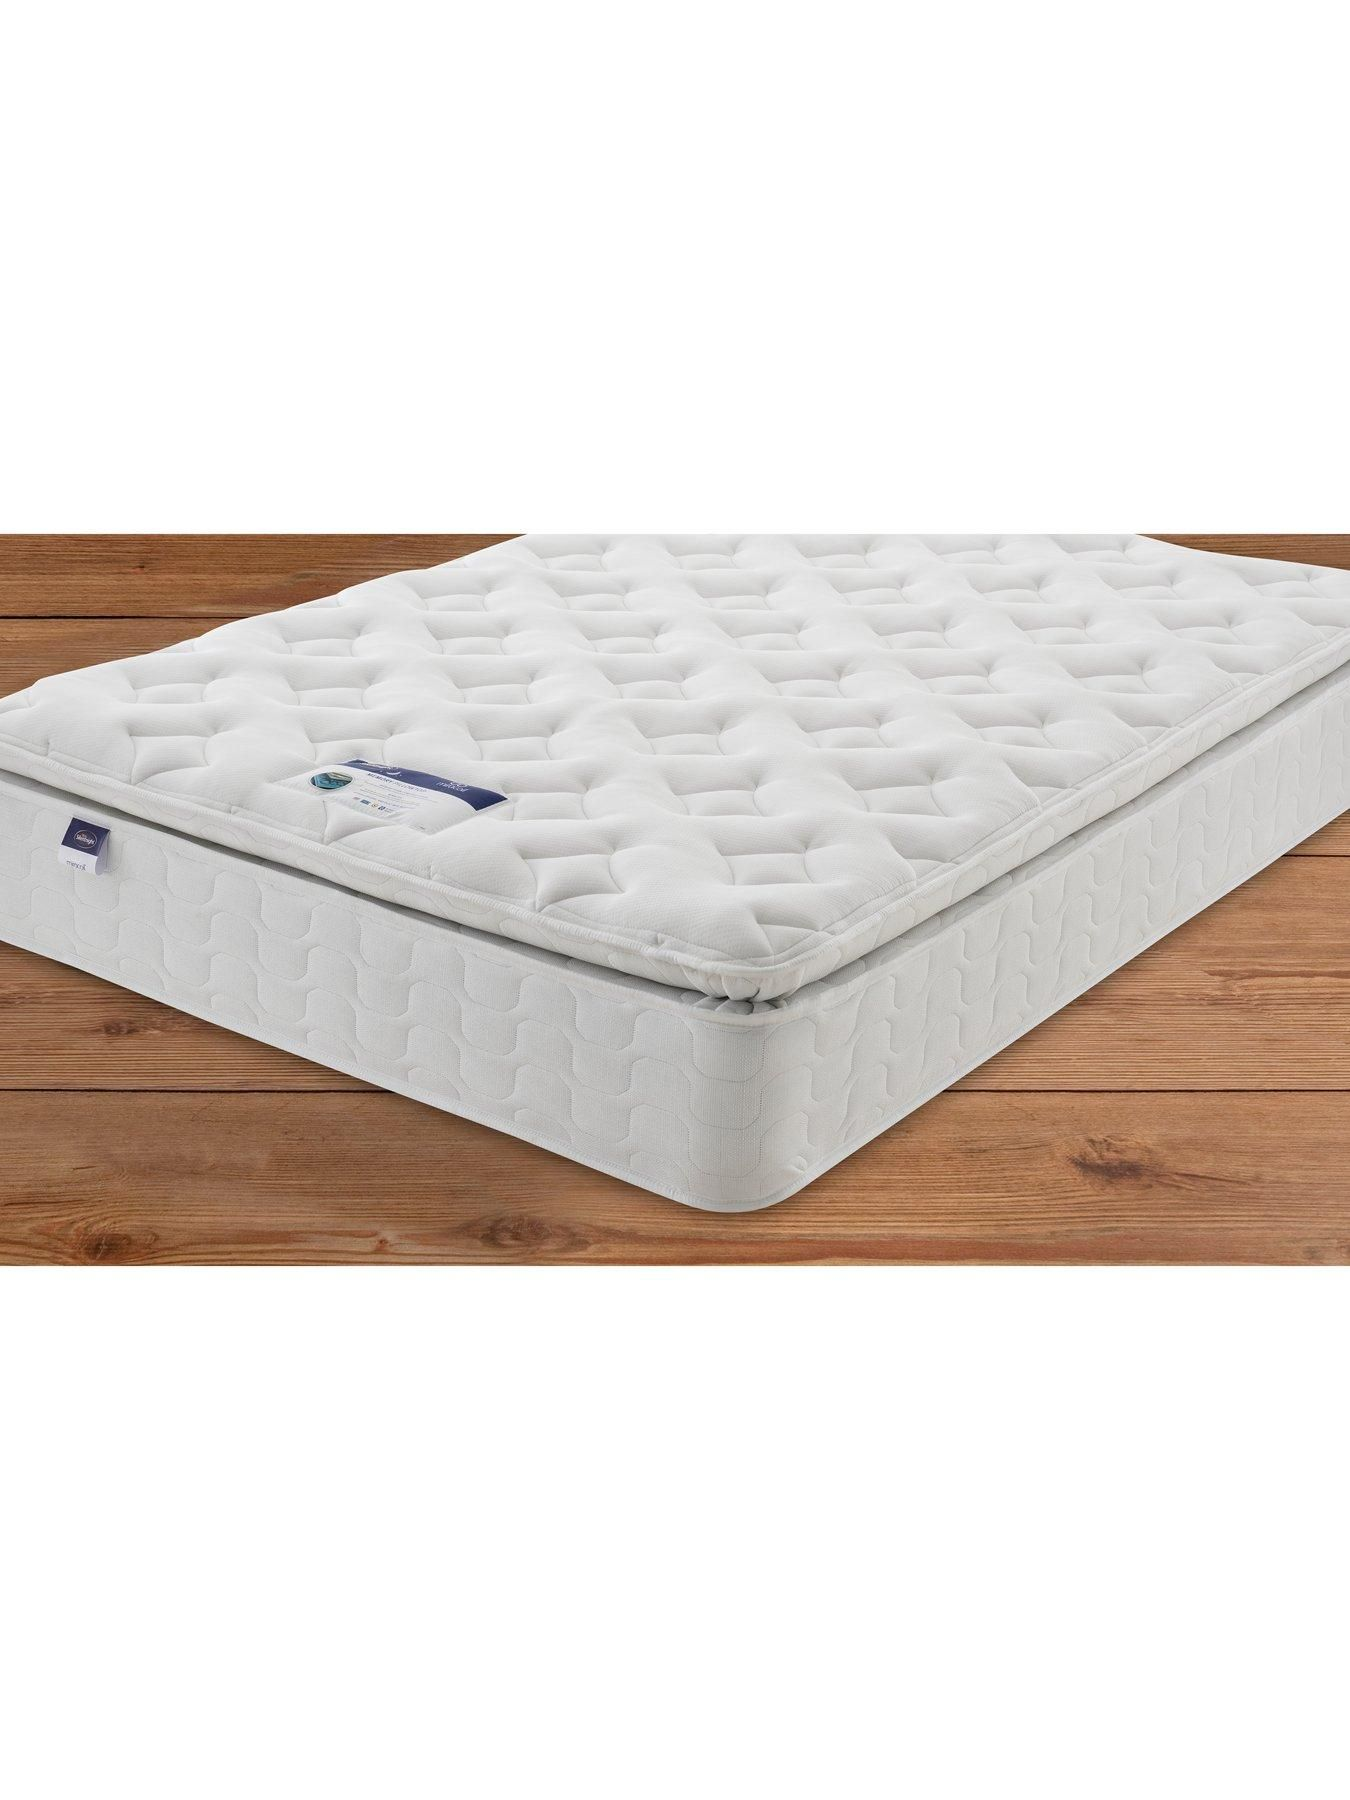 Silentnight Miracoil 3 Pippa Memory Foam Pillowtop Divan Bed With